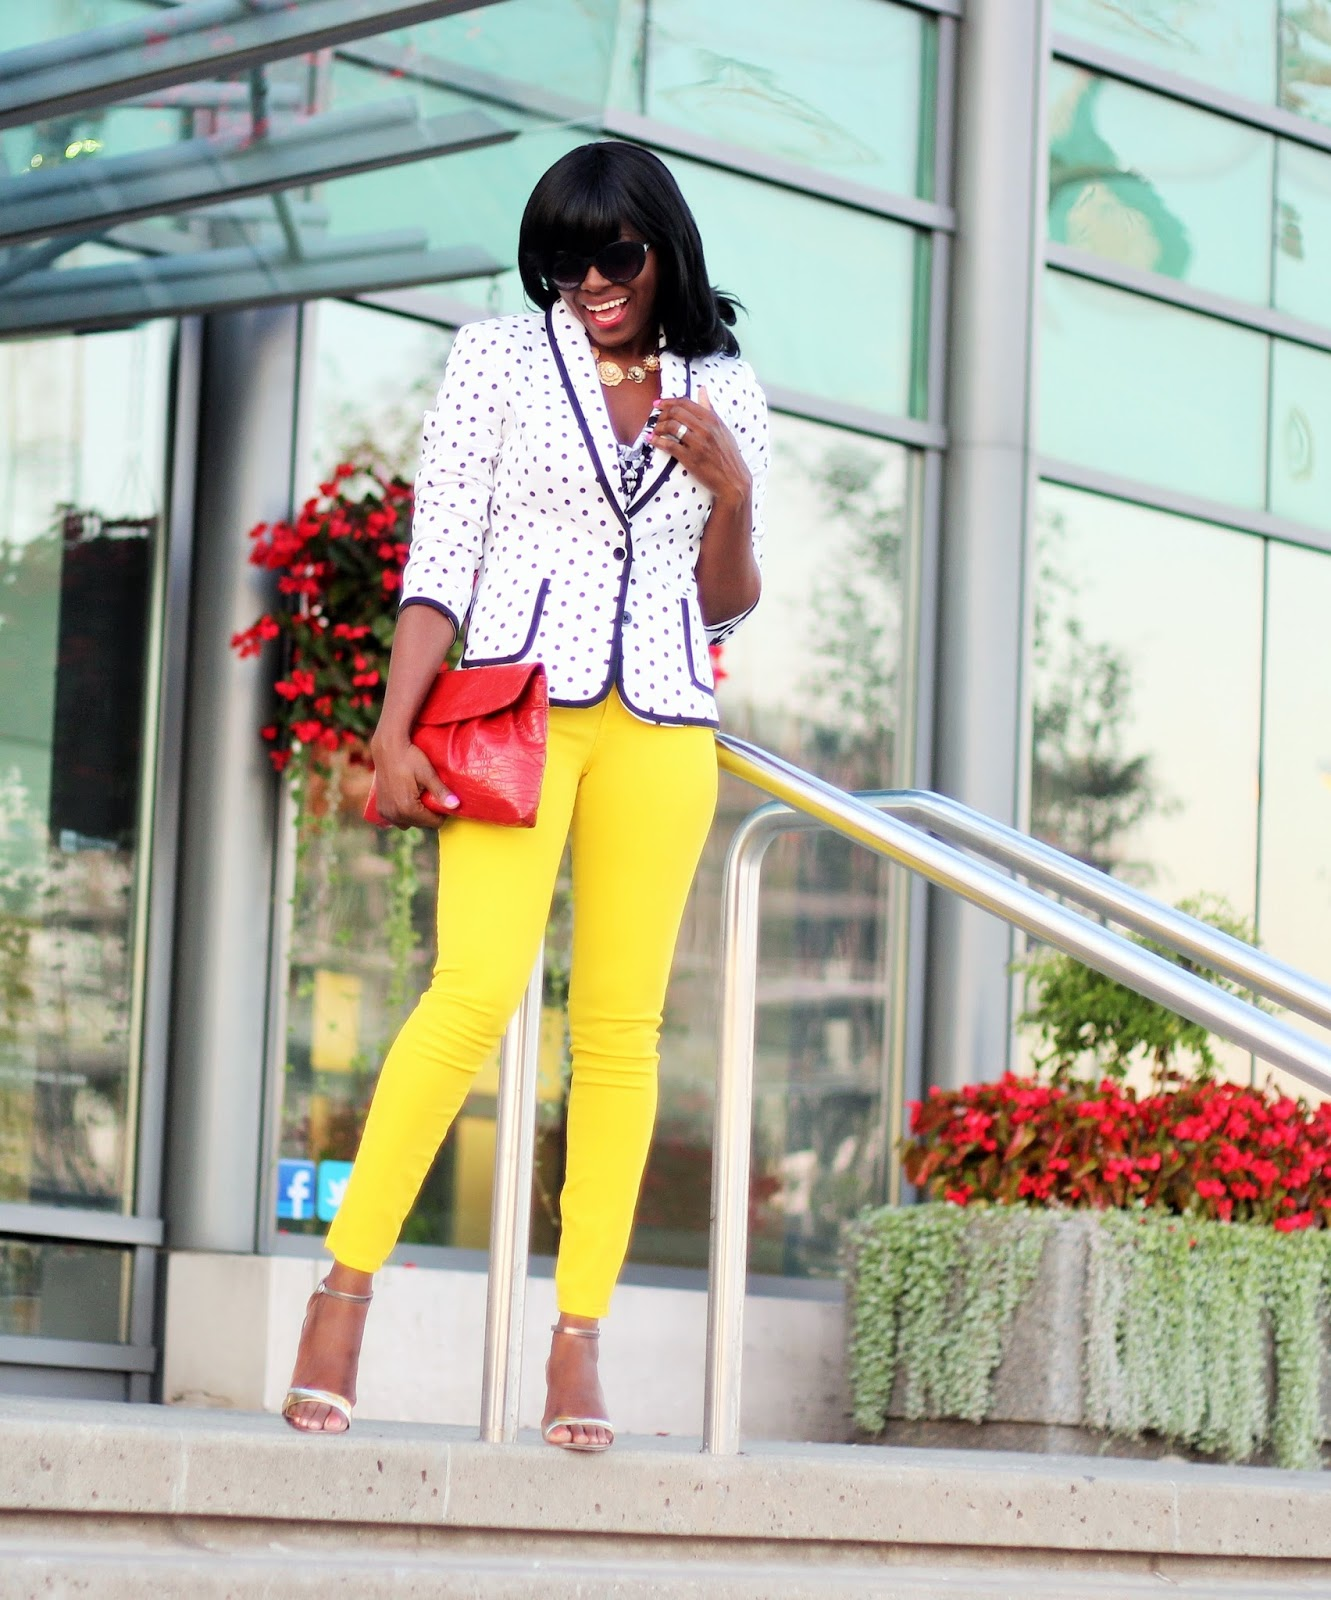 A weekend look styled with a polka dot blazer by Express